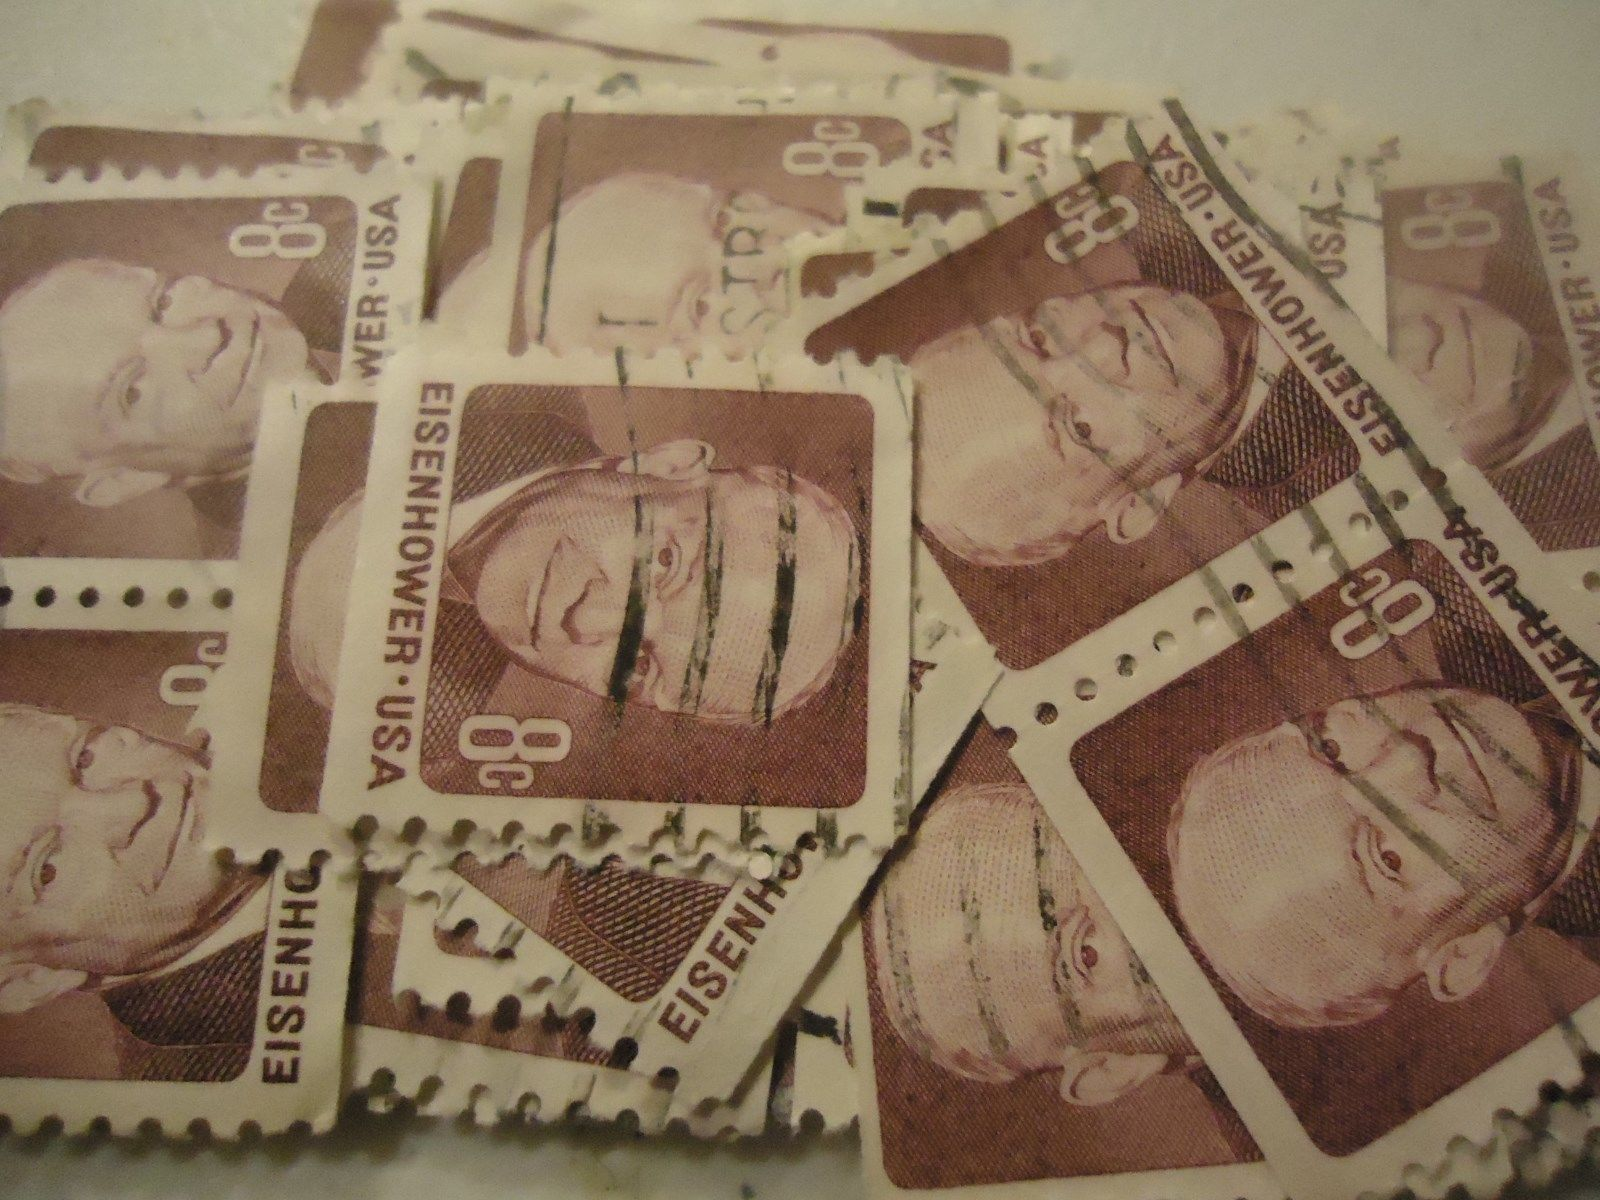 US postage stamp lot 1402 Eisenhower Regular Issue Coil 1970 CV $20.00 -100 pack